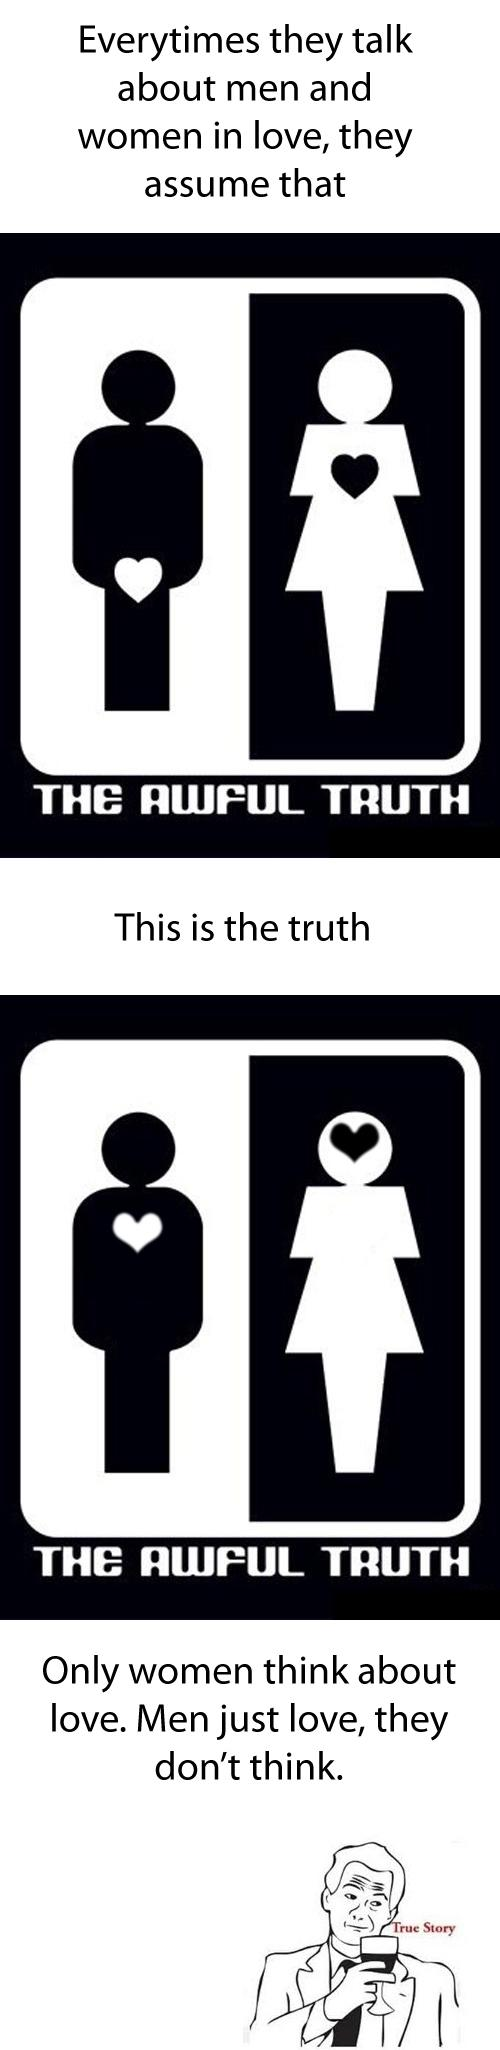 The truth about love Funny Image